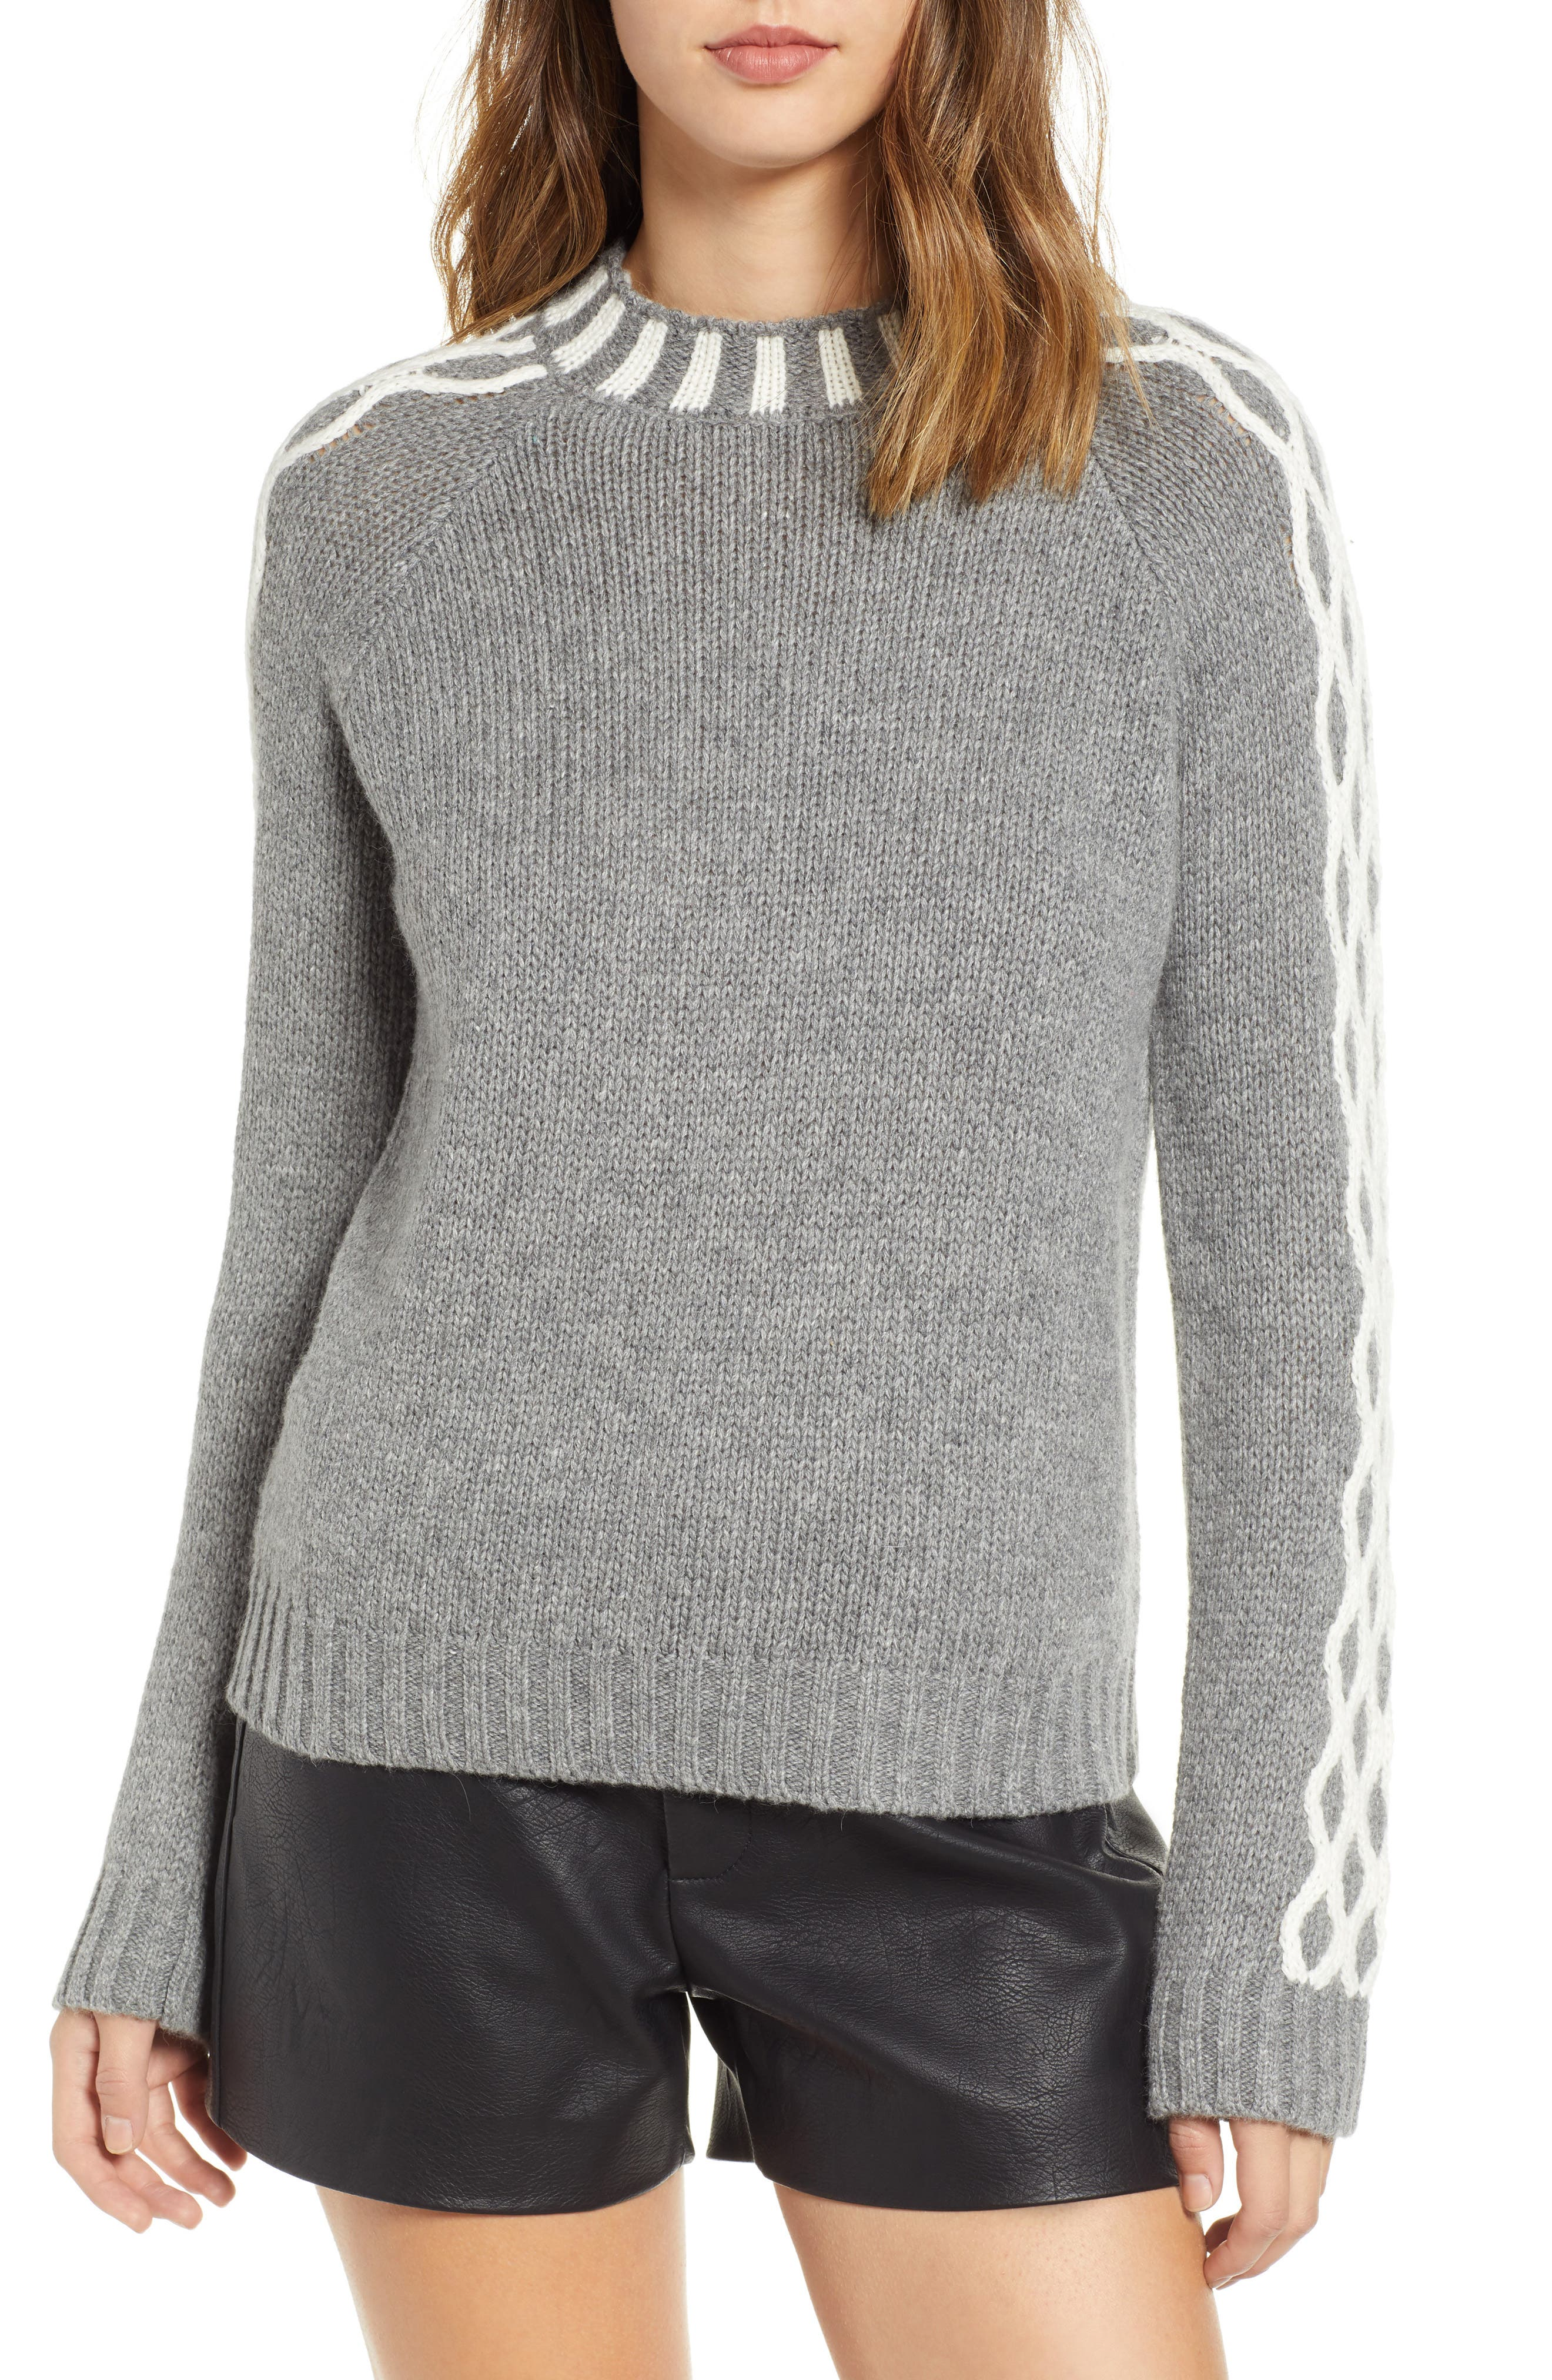 ENDLESS ROSE Contrast Knit Sweater in Grey